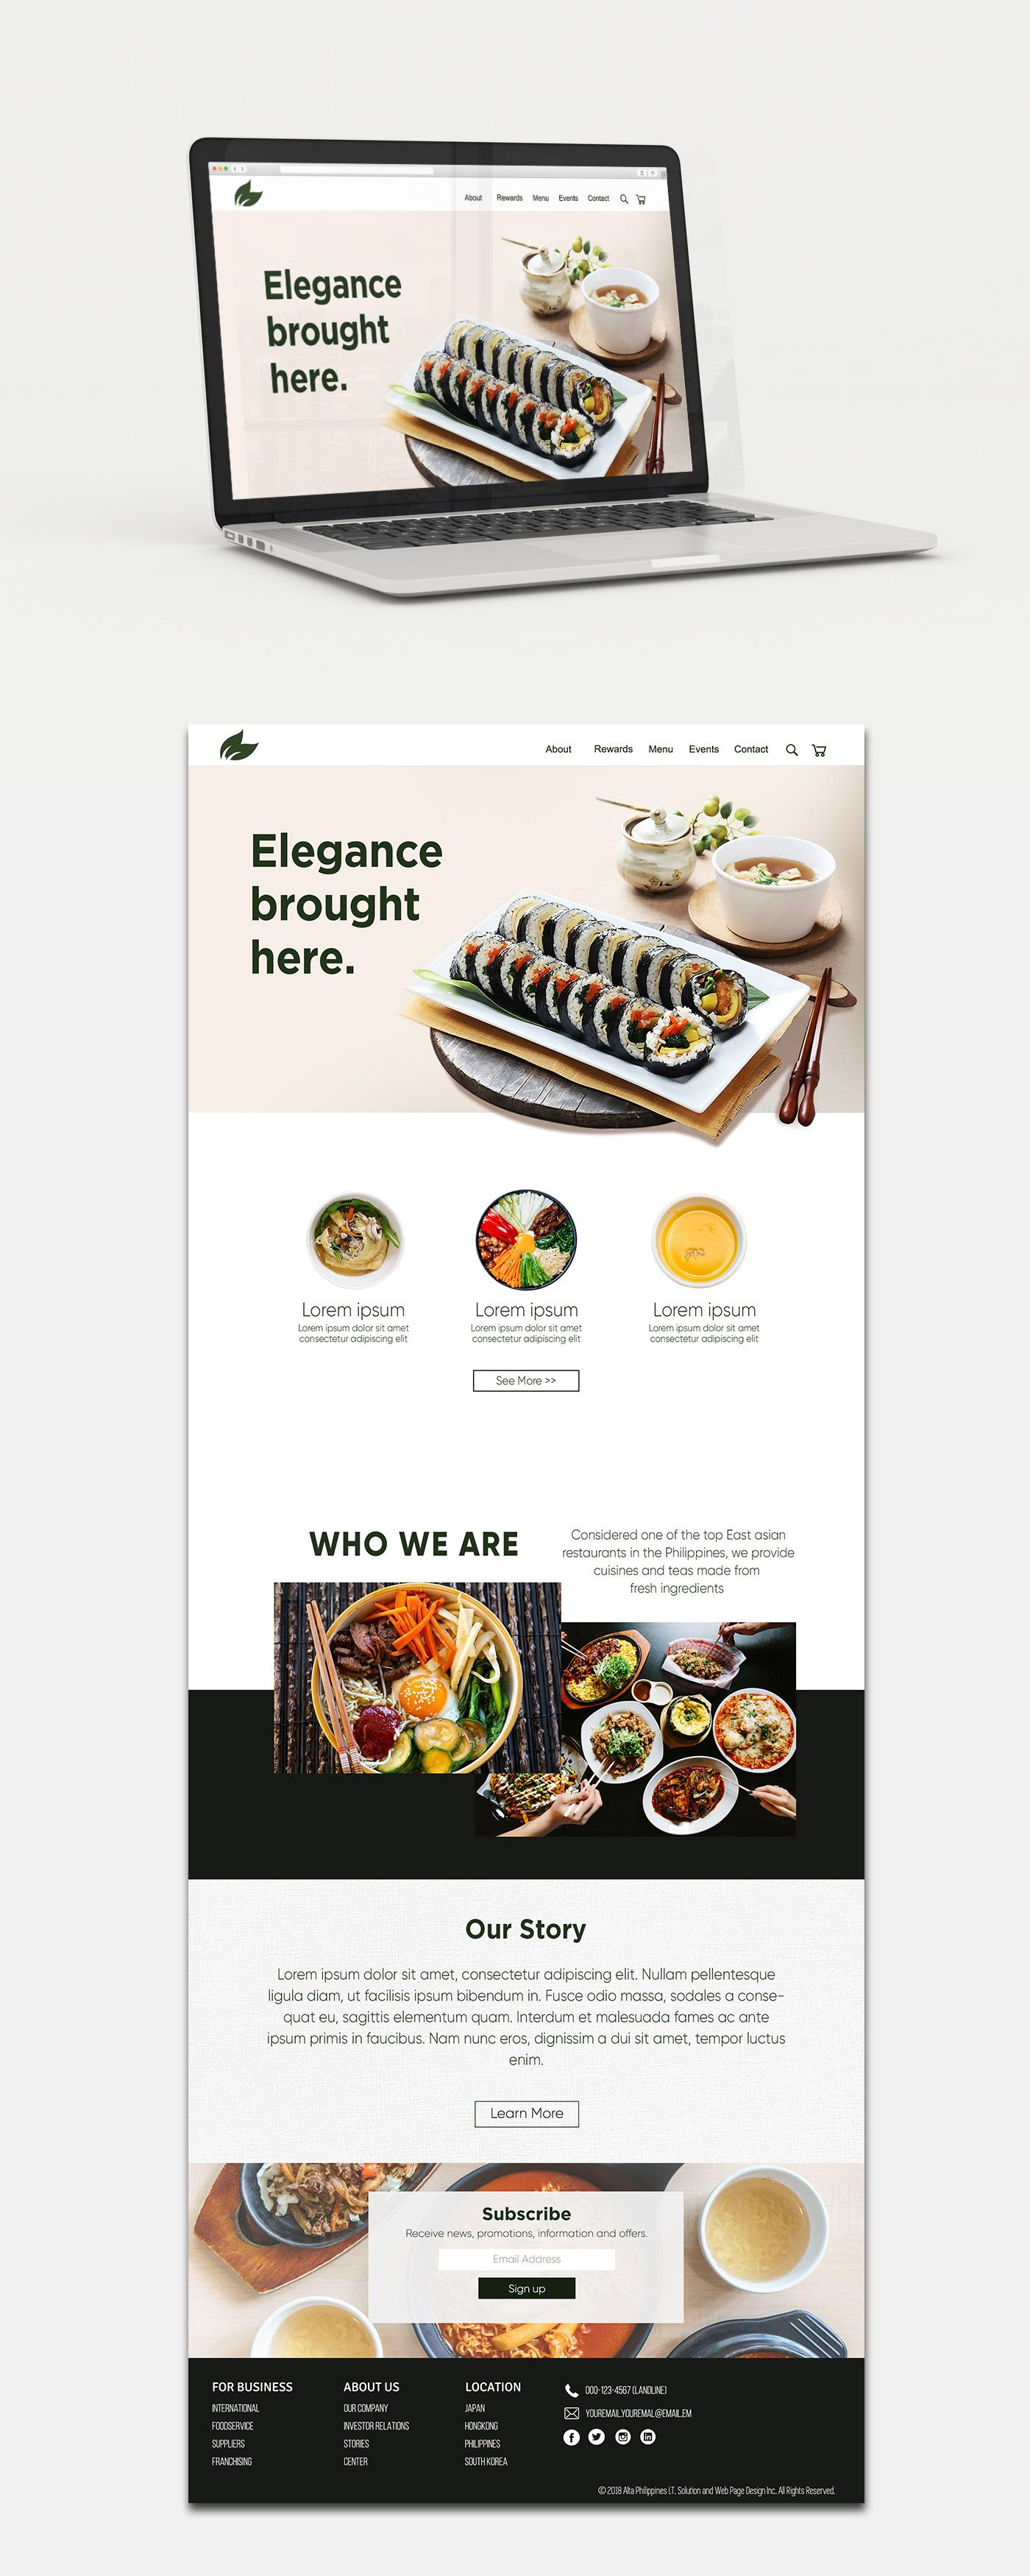 Asian Restaurant Website Design On Behance In 2020 Restaurant Website Design Asian Restaurants Restaurant Website